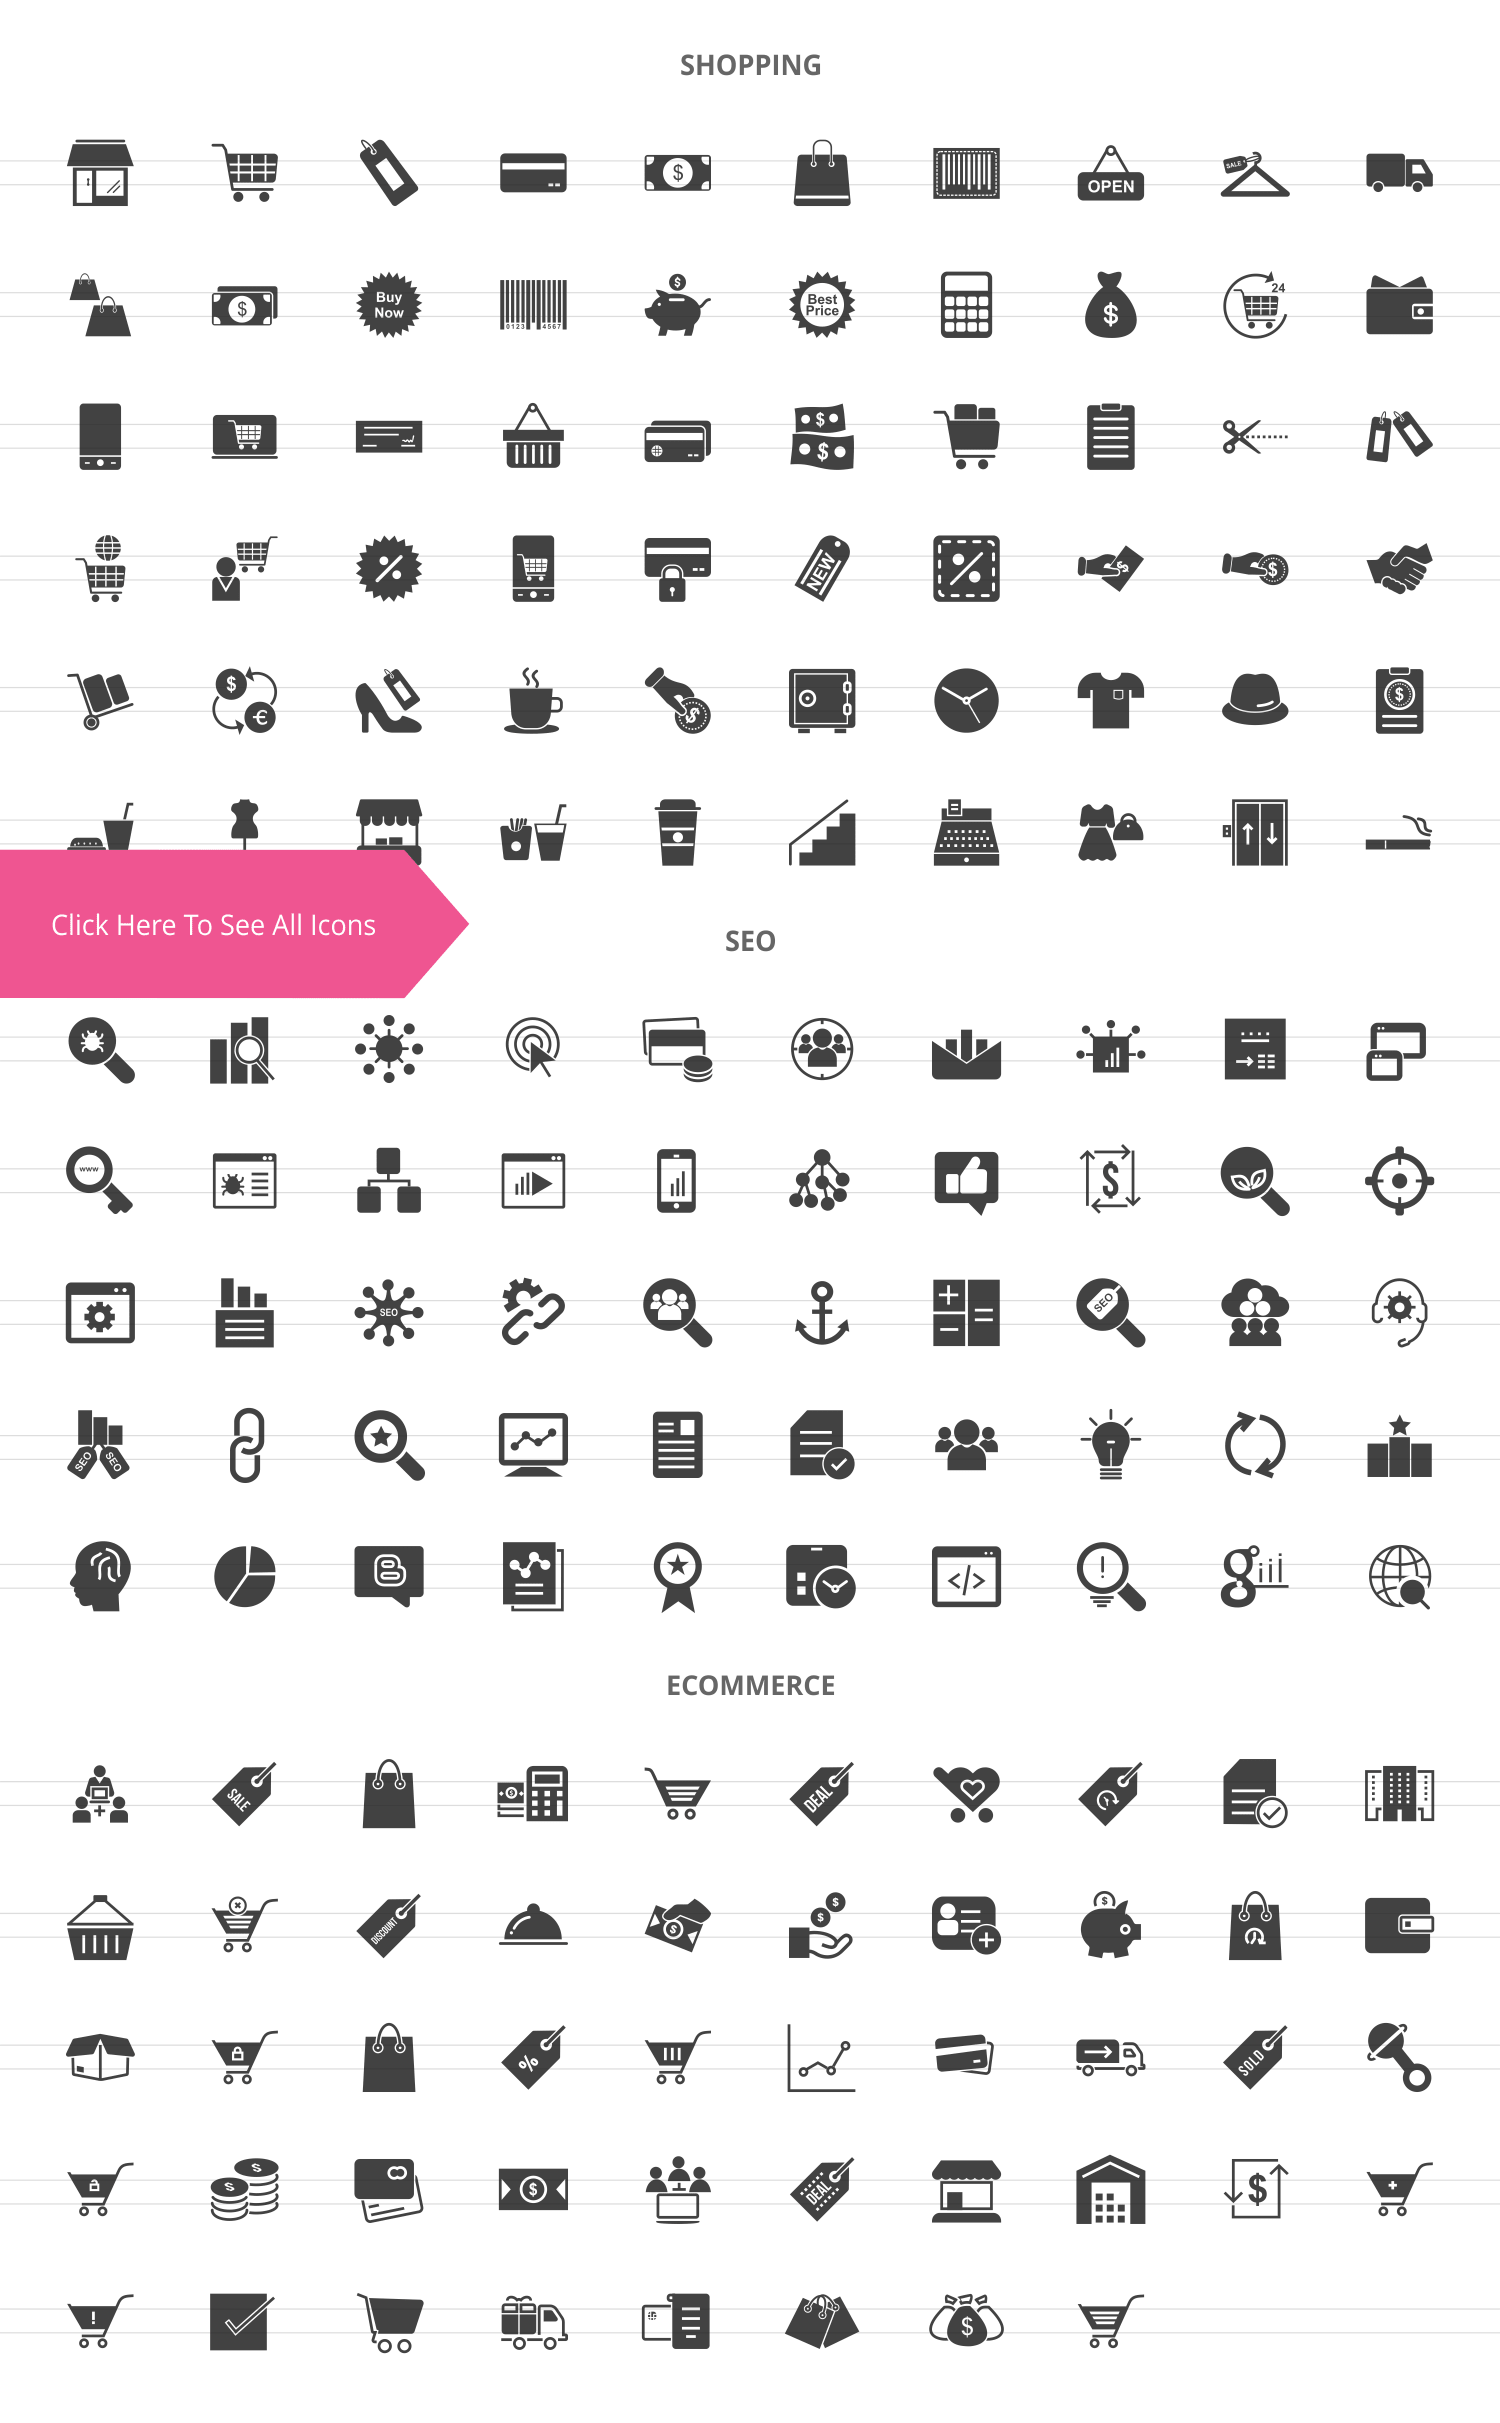 158 Shopping & E-Commerce Glyph Icons example image 2